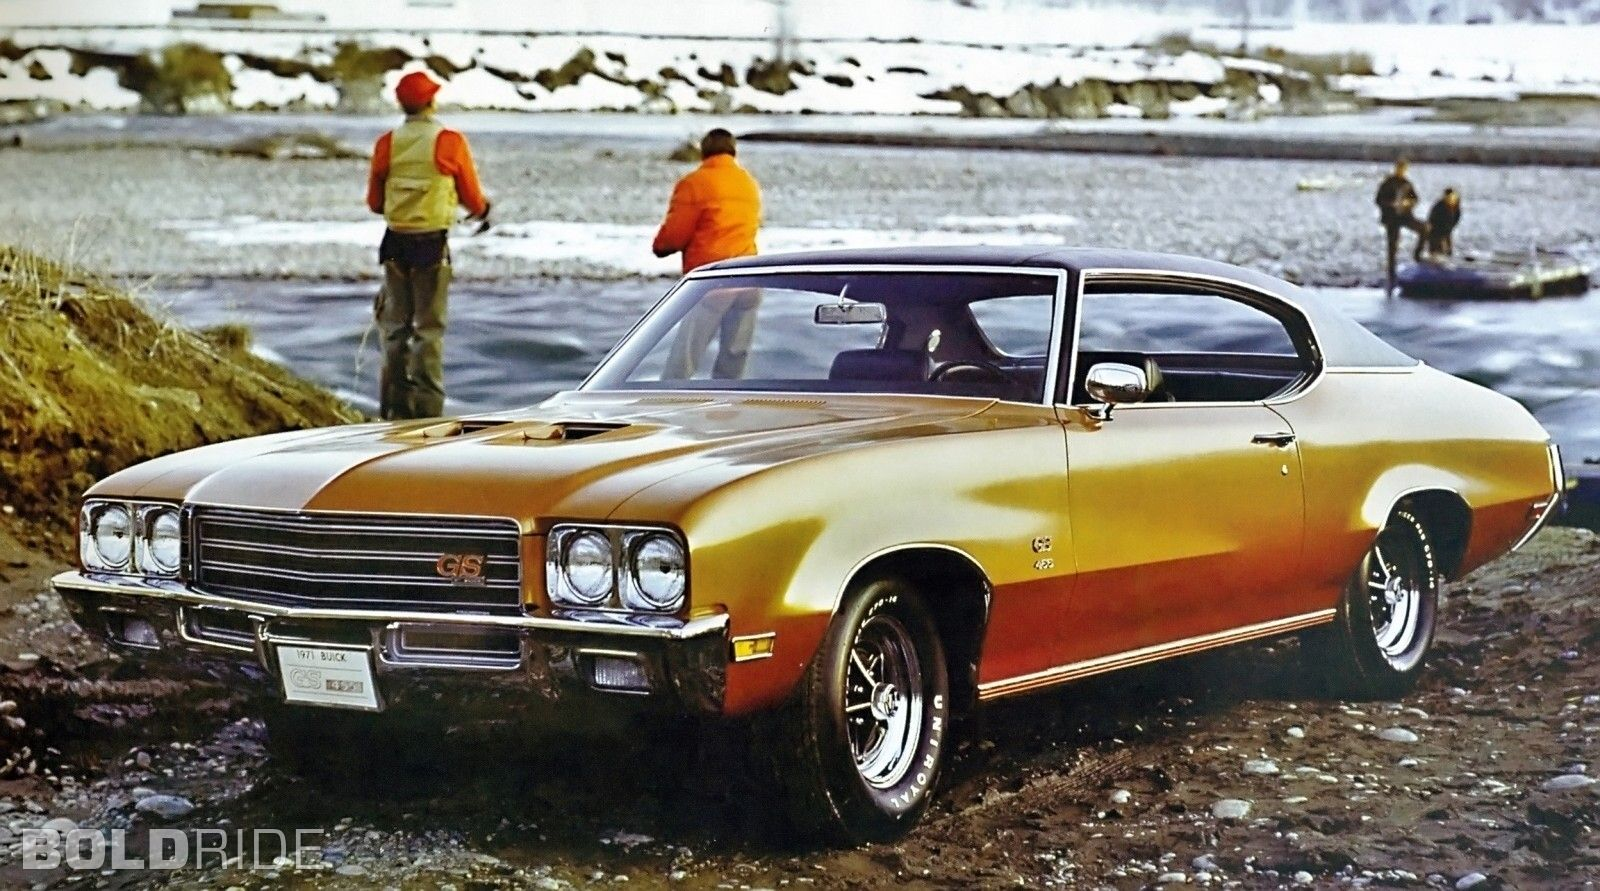 1971 Buick GS 455